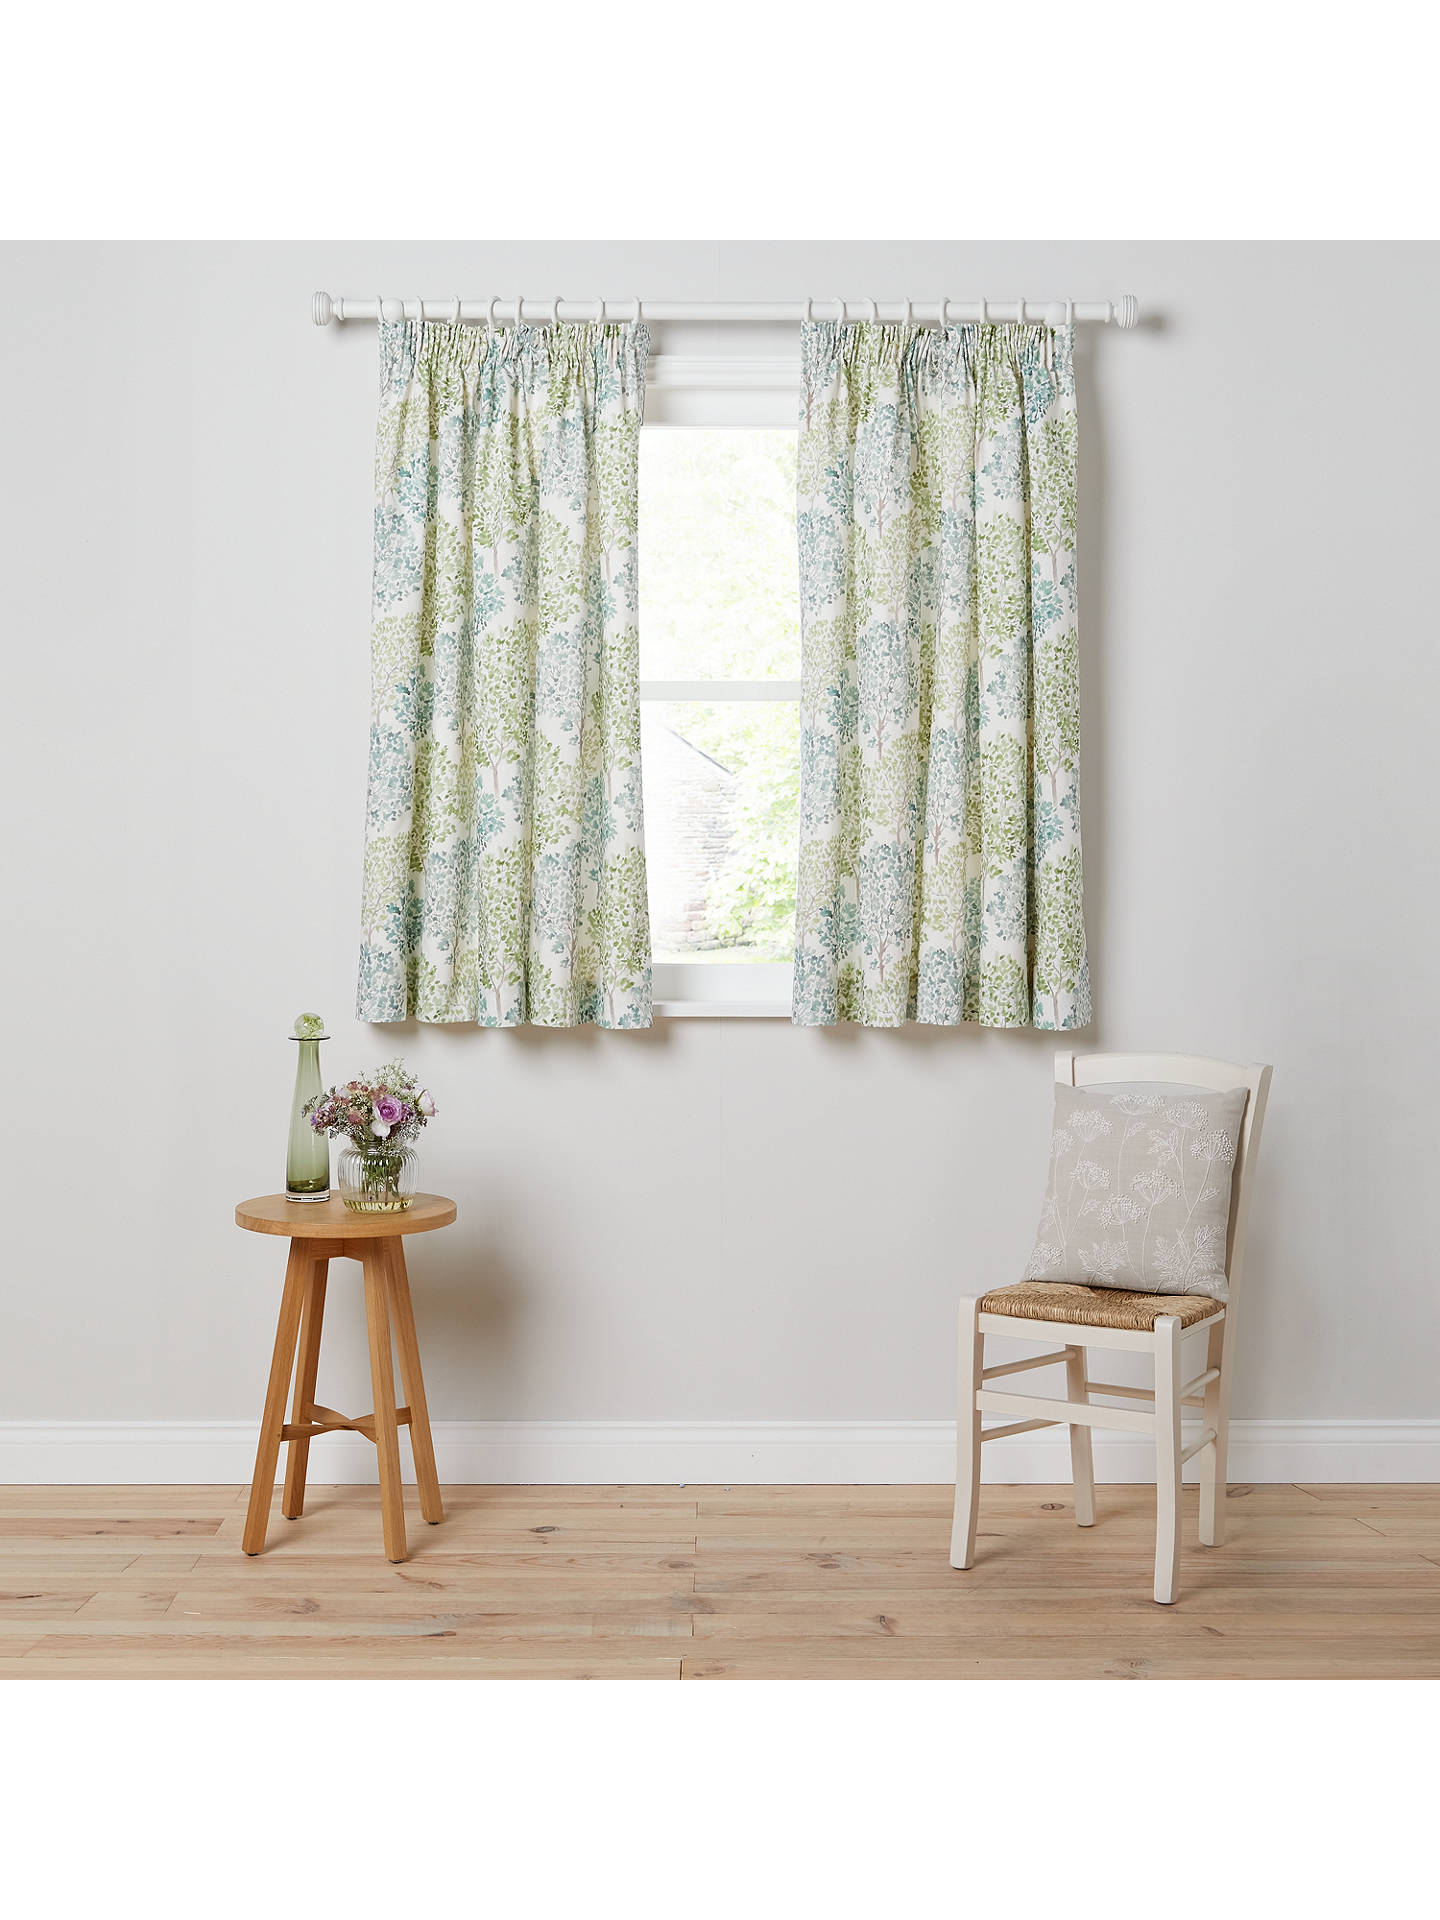 Buy John Lewis & Partners Leckford Trees Pair Lined Pencil Pleat Curtains, Green, W167 x Drop 137cm Online at johnlewis.com